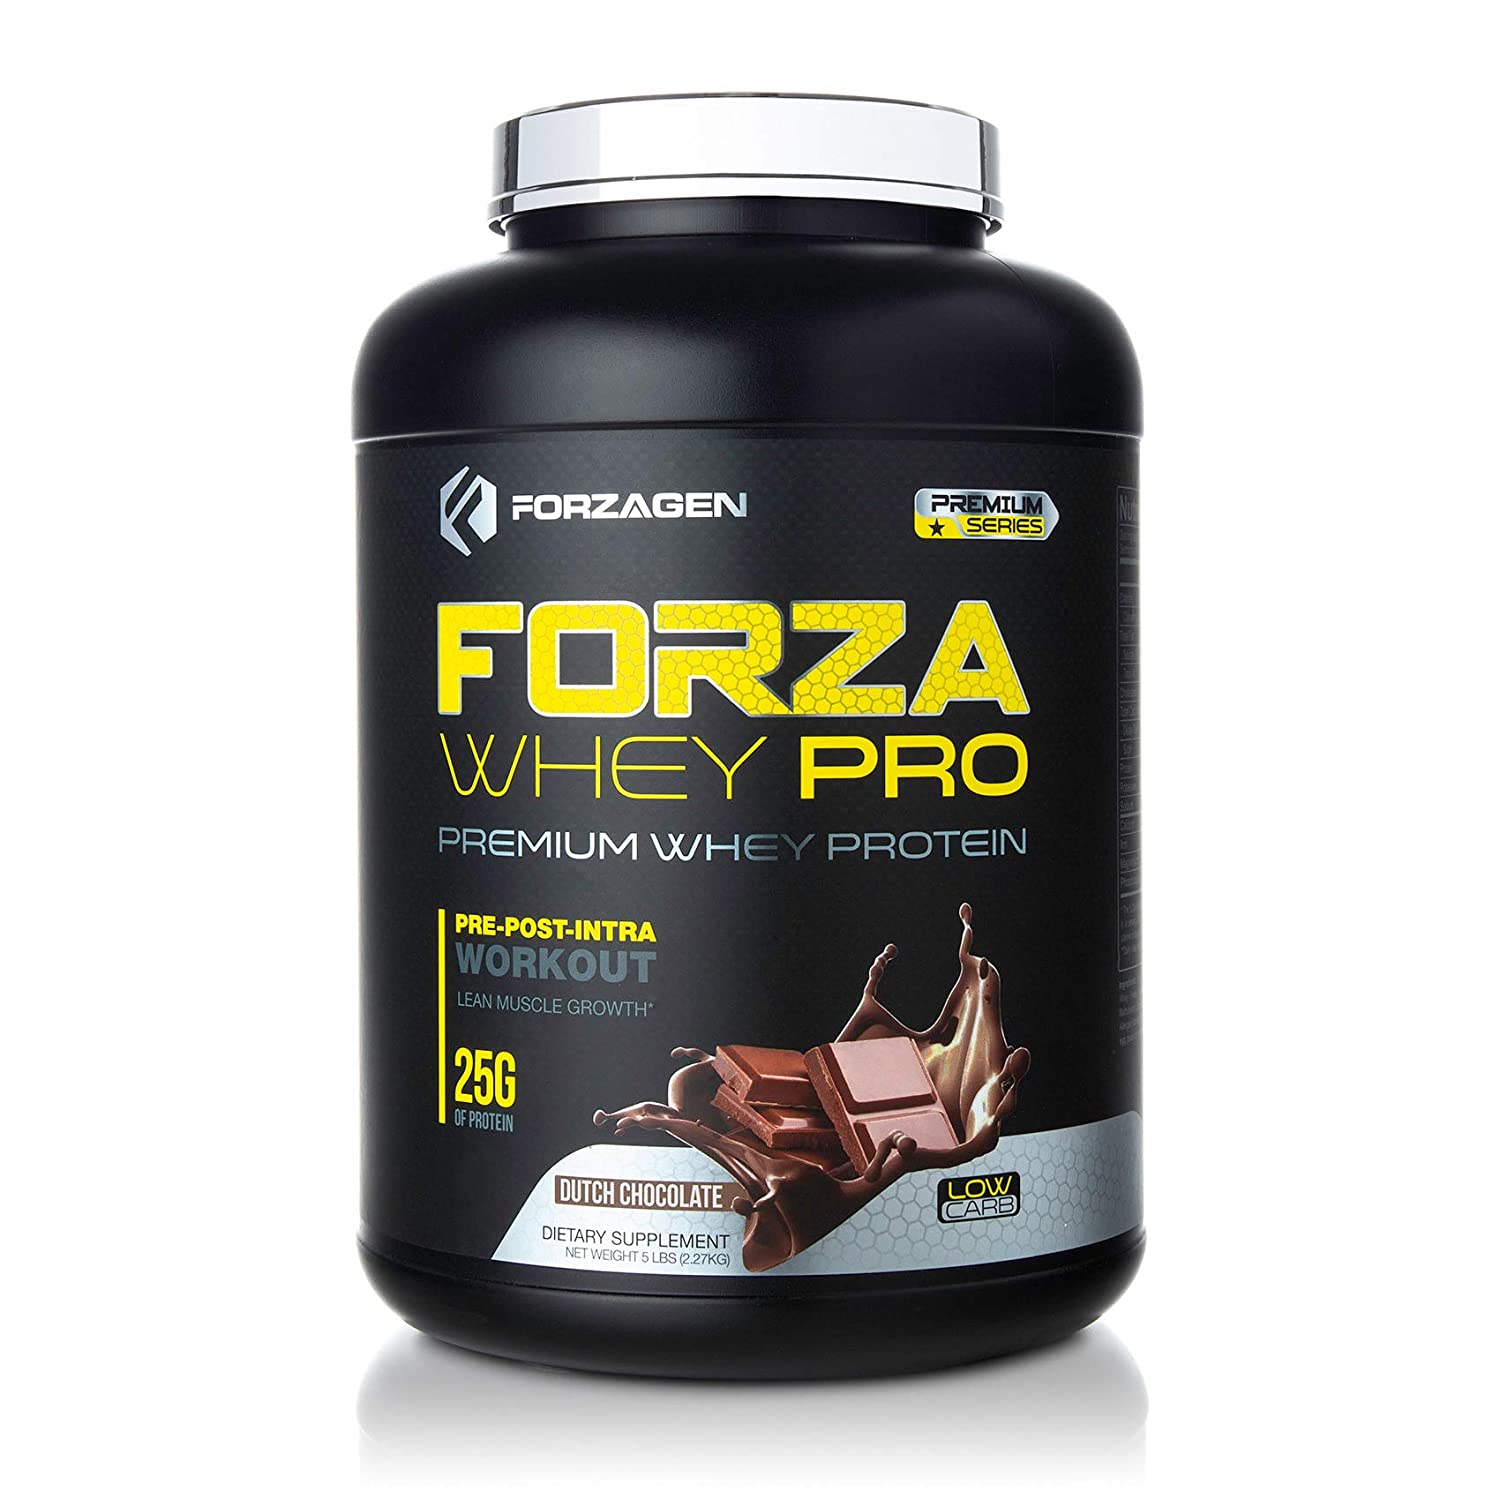 Forzagen Protein Powder 5lb – Best Whey Protein Weight Gainer Increase Muscle Mass Meal Replacement Shakes Low Carb Protein Powder Pre Workout and Post Workout Dutch Chocolate